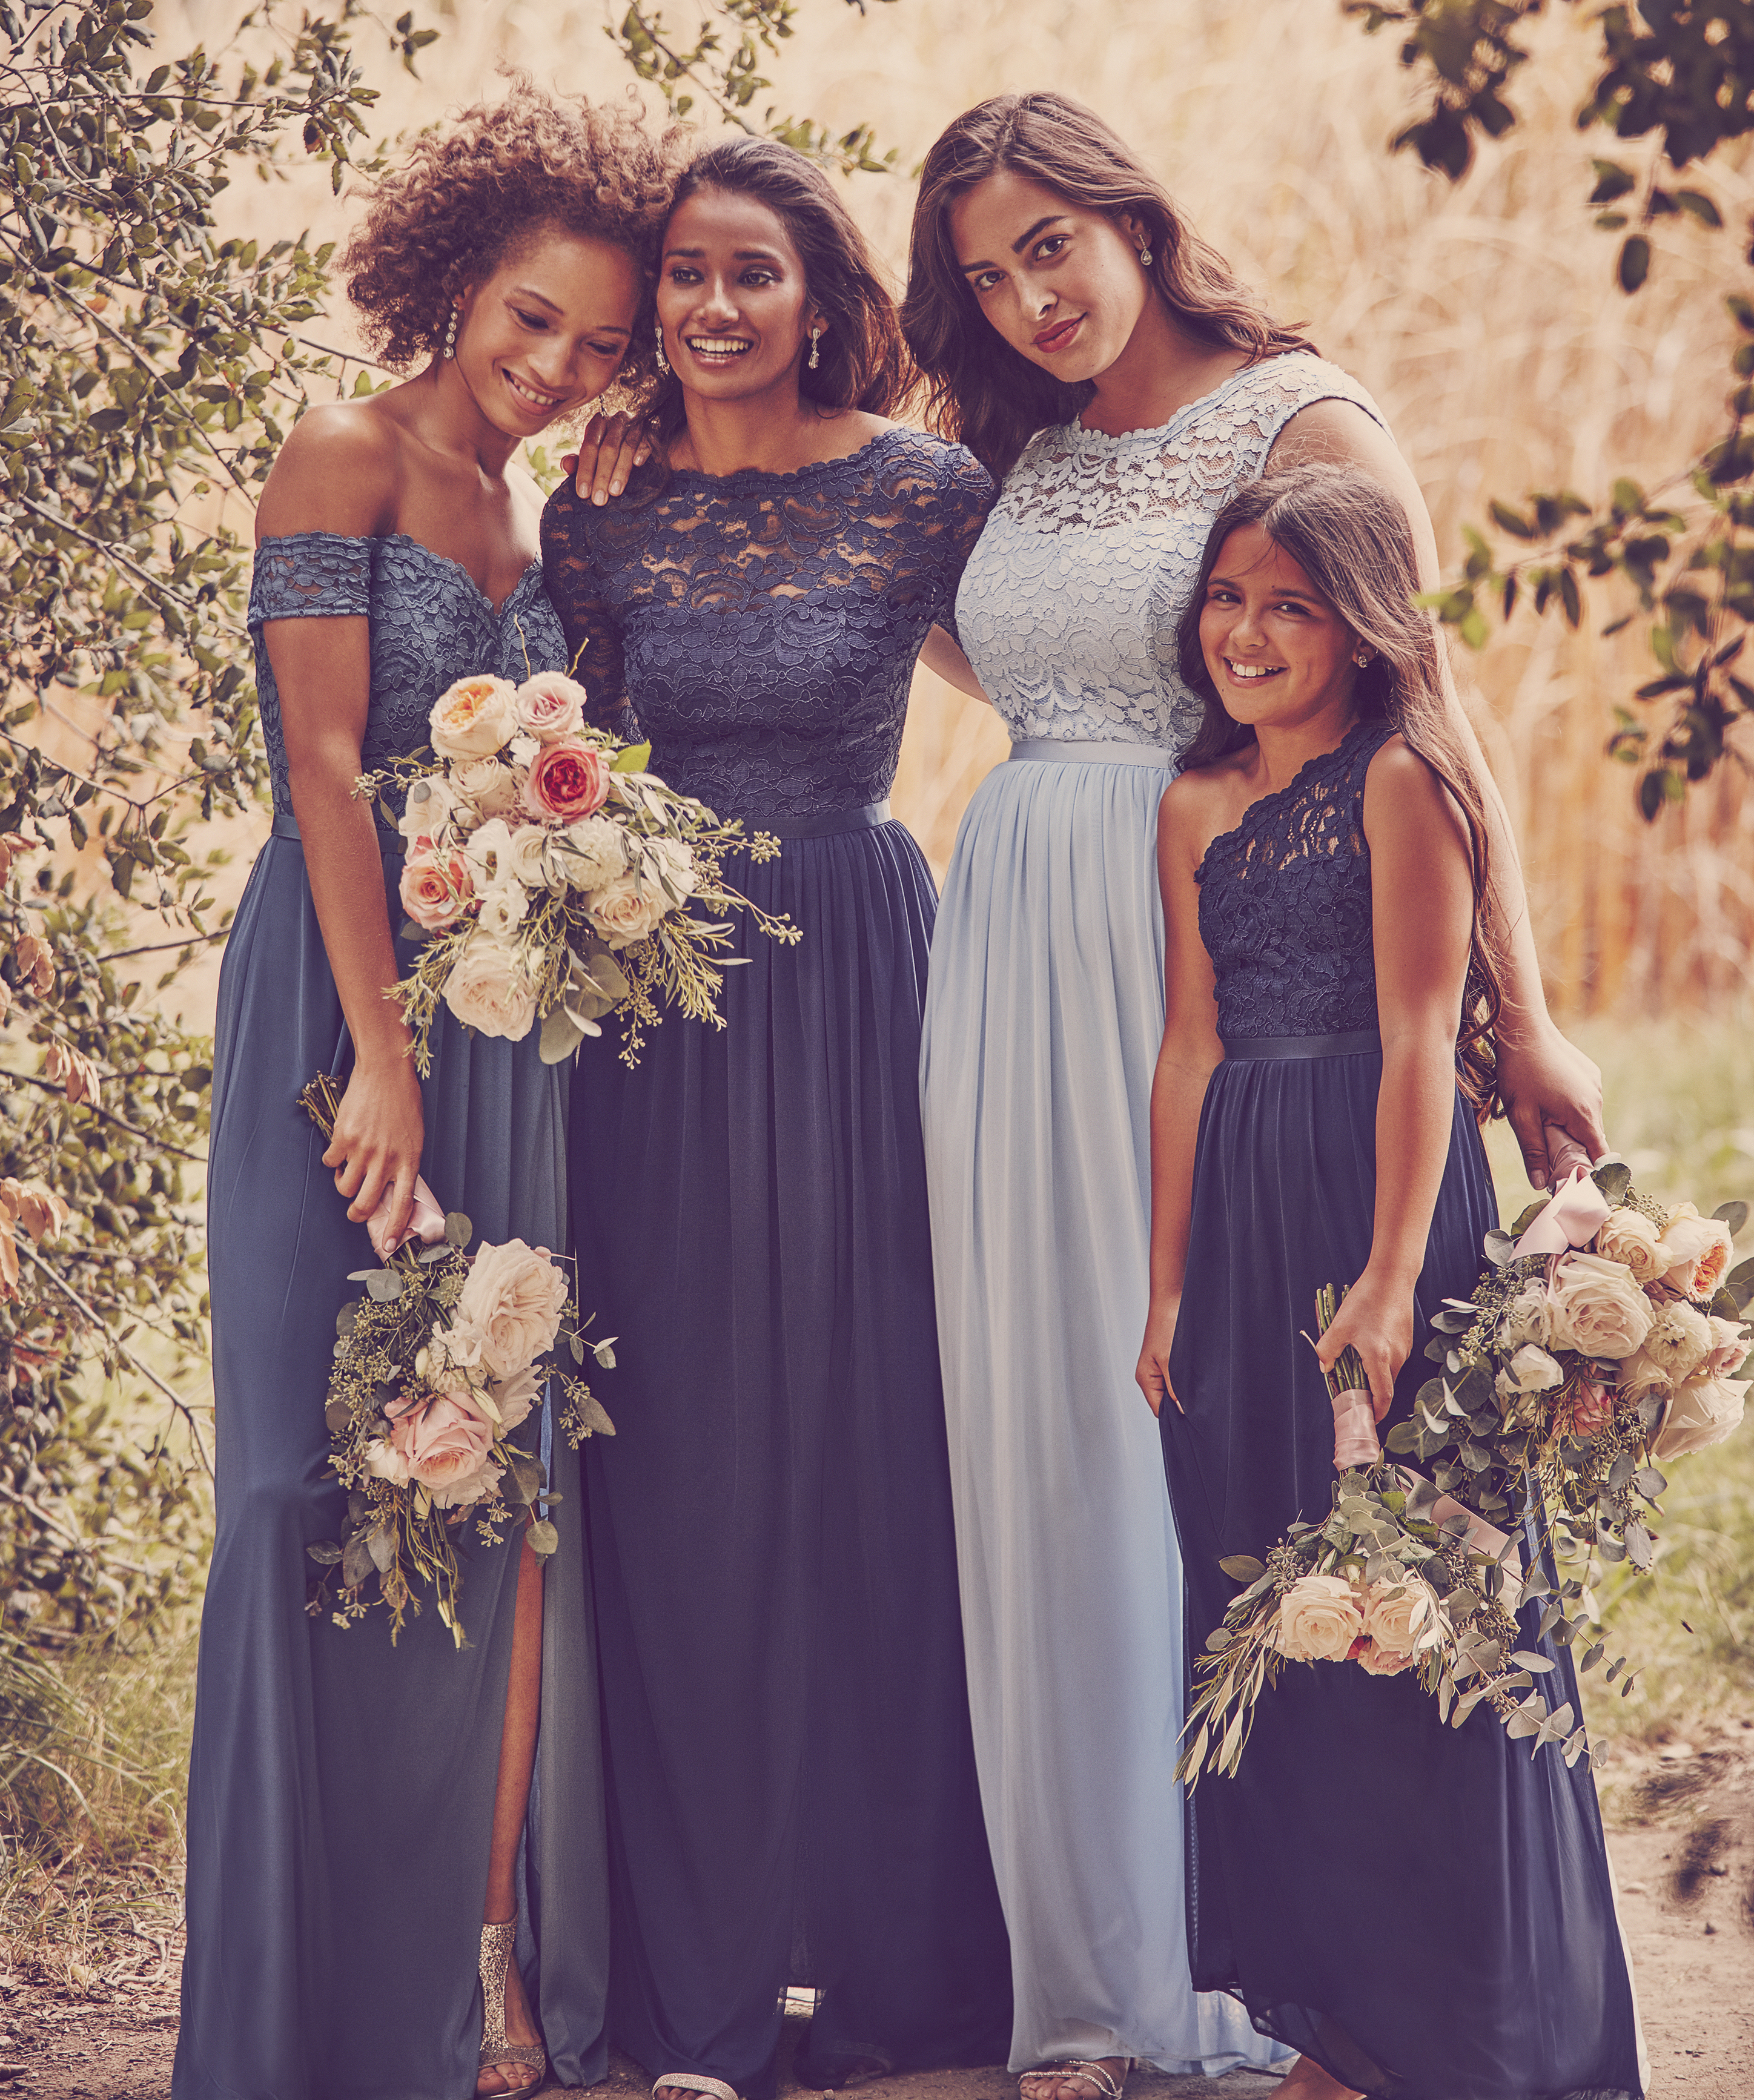 Women and child smiling in long lace bridesmaid dresses